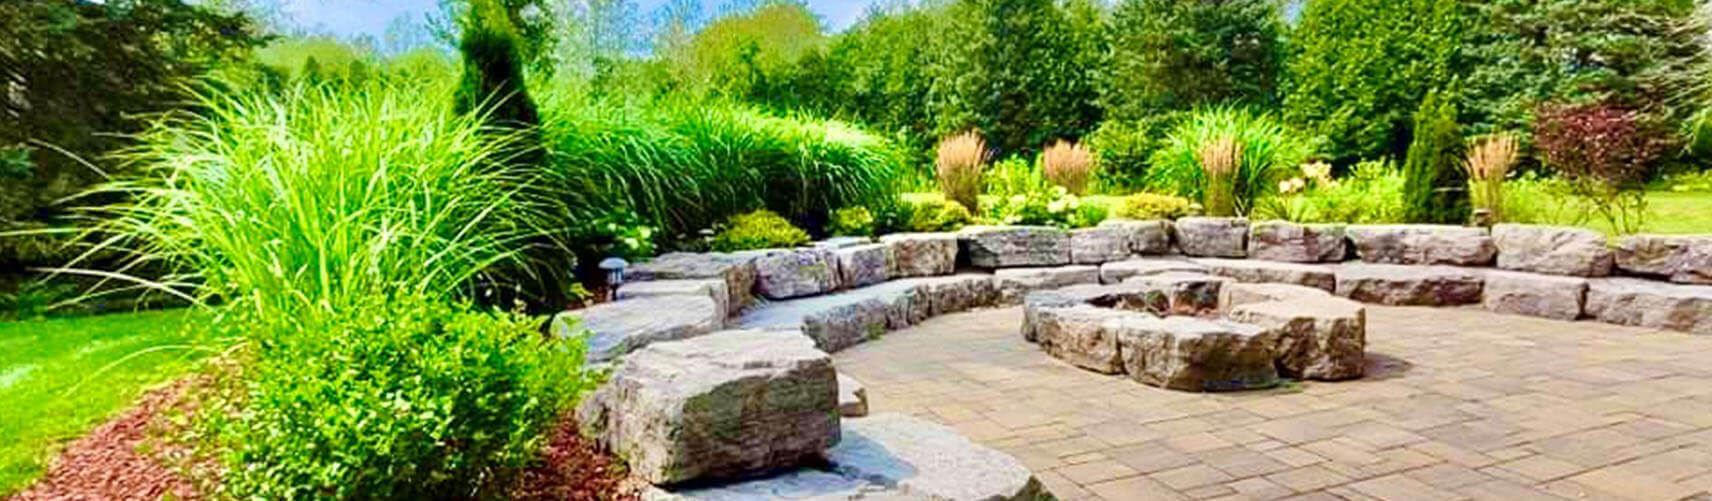 Newmarket Landscaping Company, Landscaper and Landscaping Services